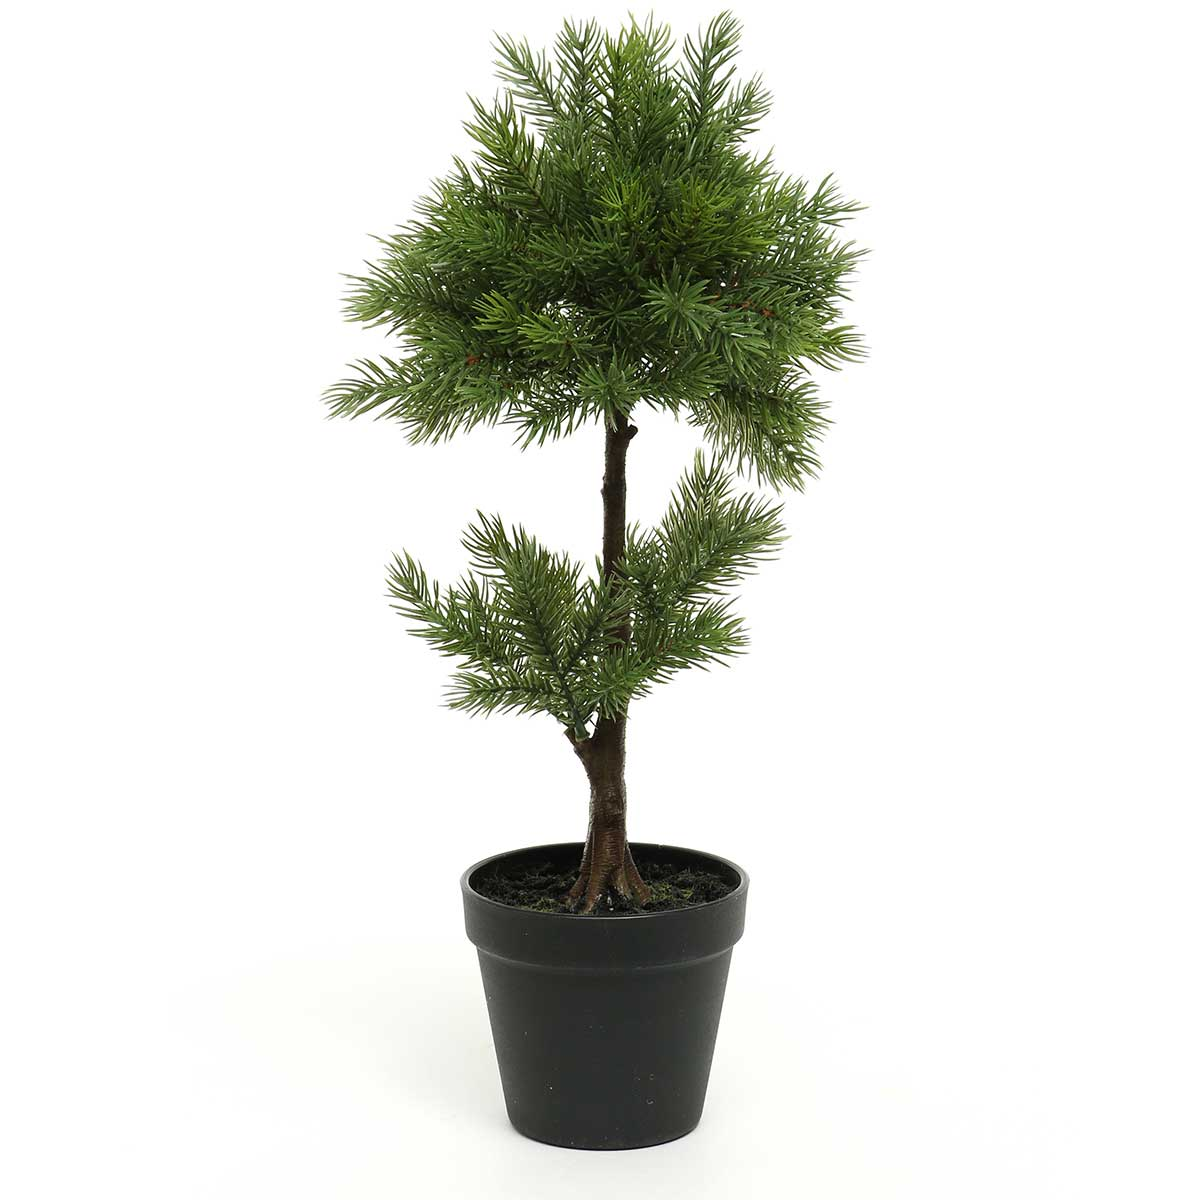 BALSAM FIR TOPIARY TREE IN